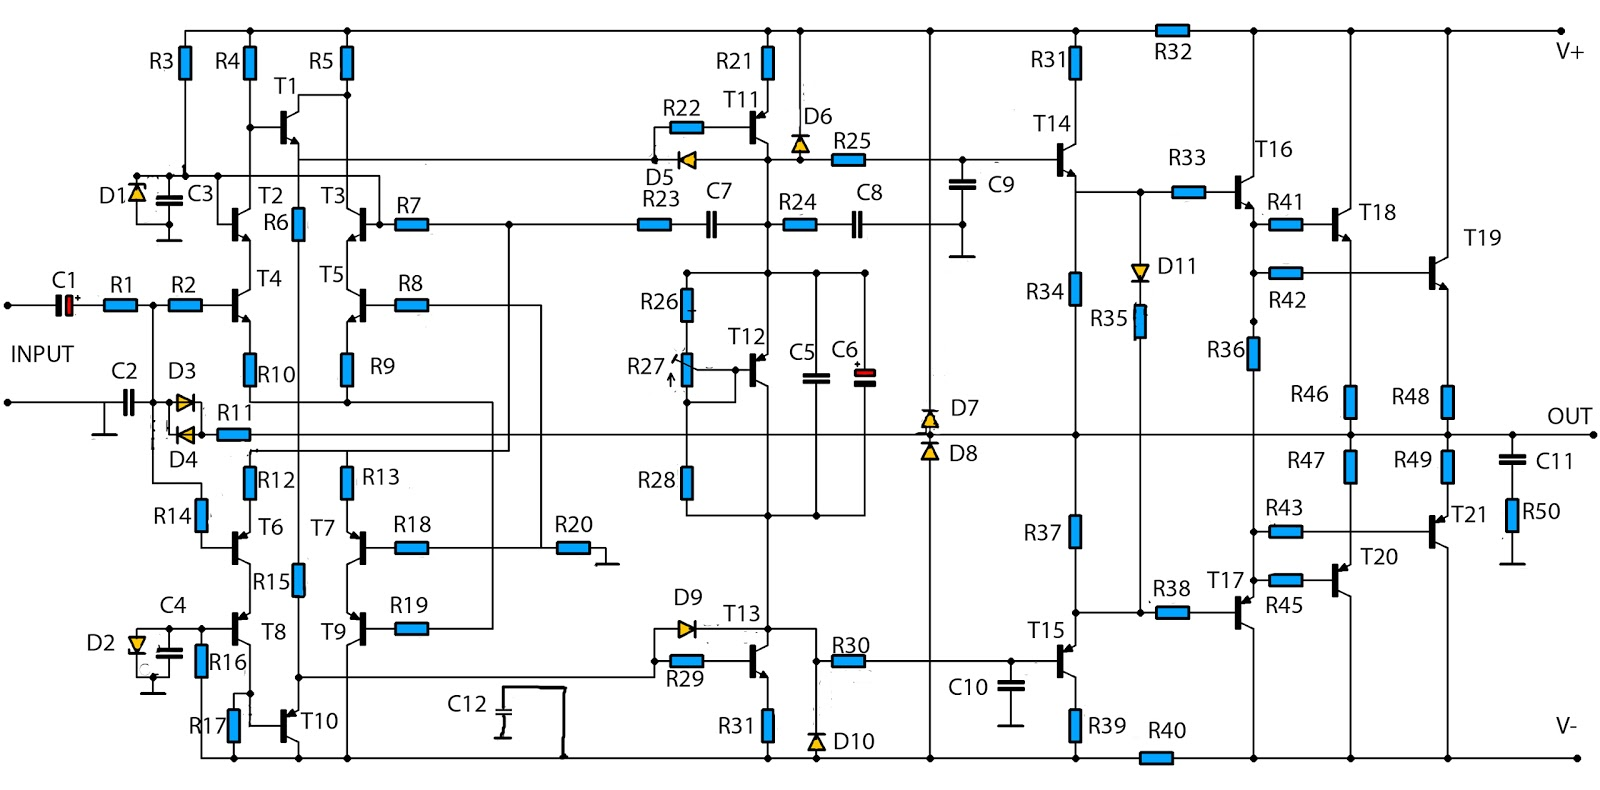 2800+W+power+amplifier+high+power+amplifier 2800w high power amplifier circuit [updated!] electronic circuit amplifier schematic diagram at panicattacktreatment.co